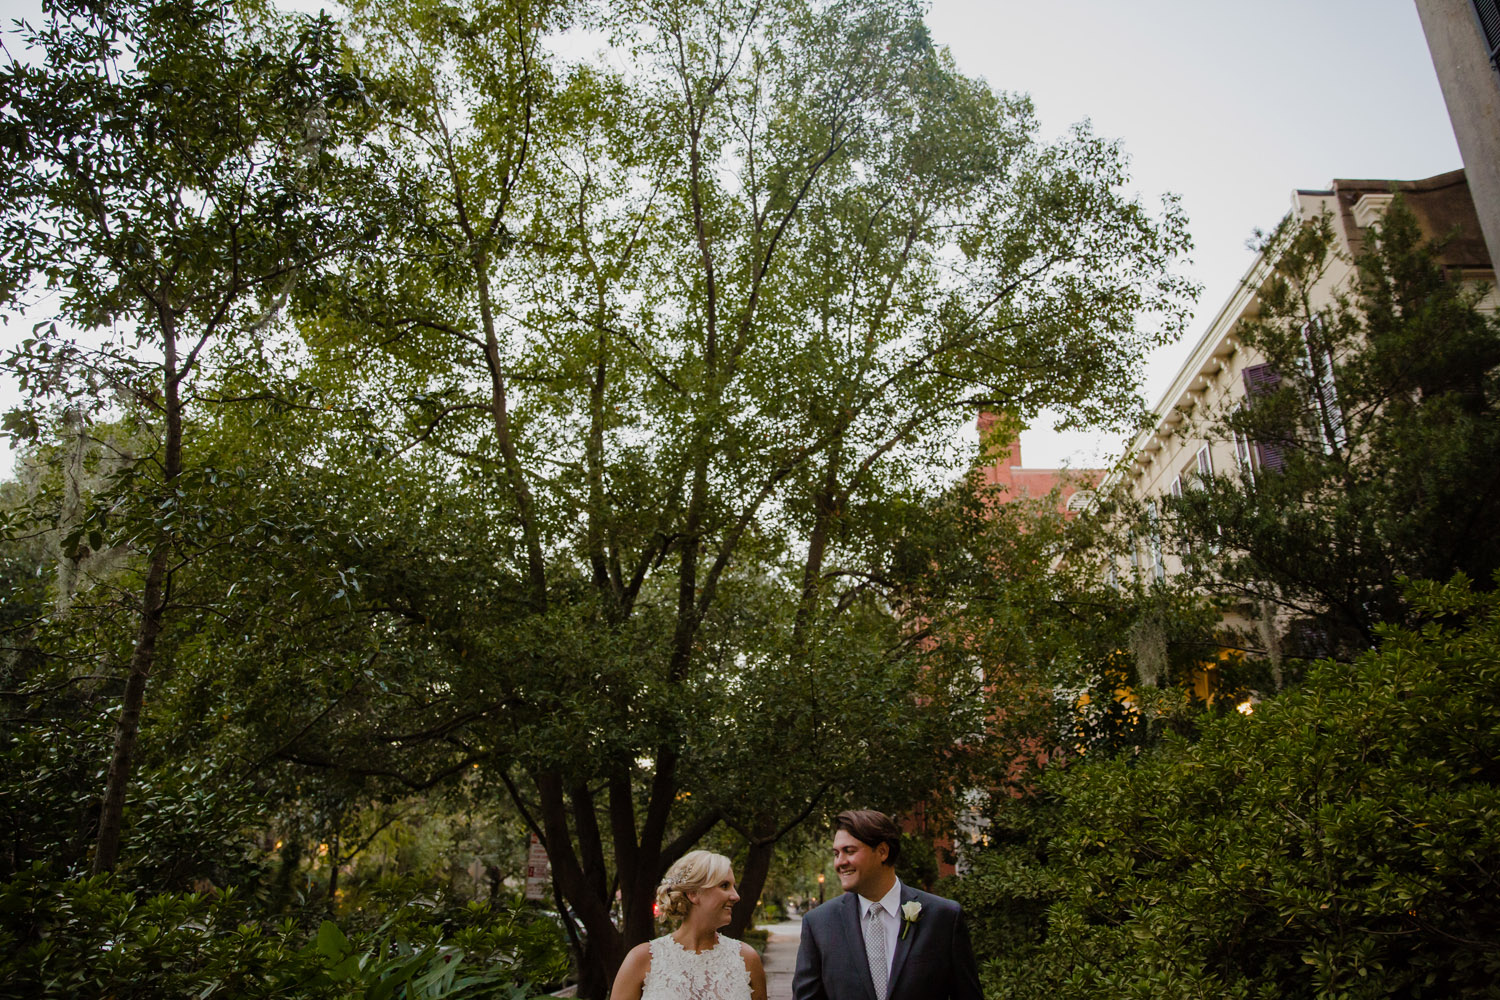 Atlanta Wedding Photographers Savannah Elopement Photographer Destination Photography_1057.jpg